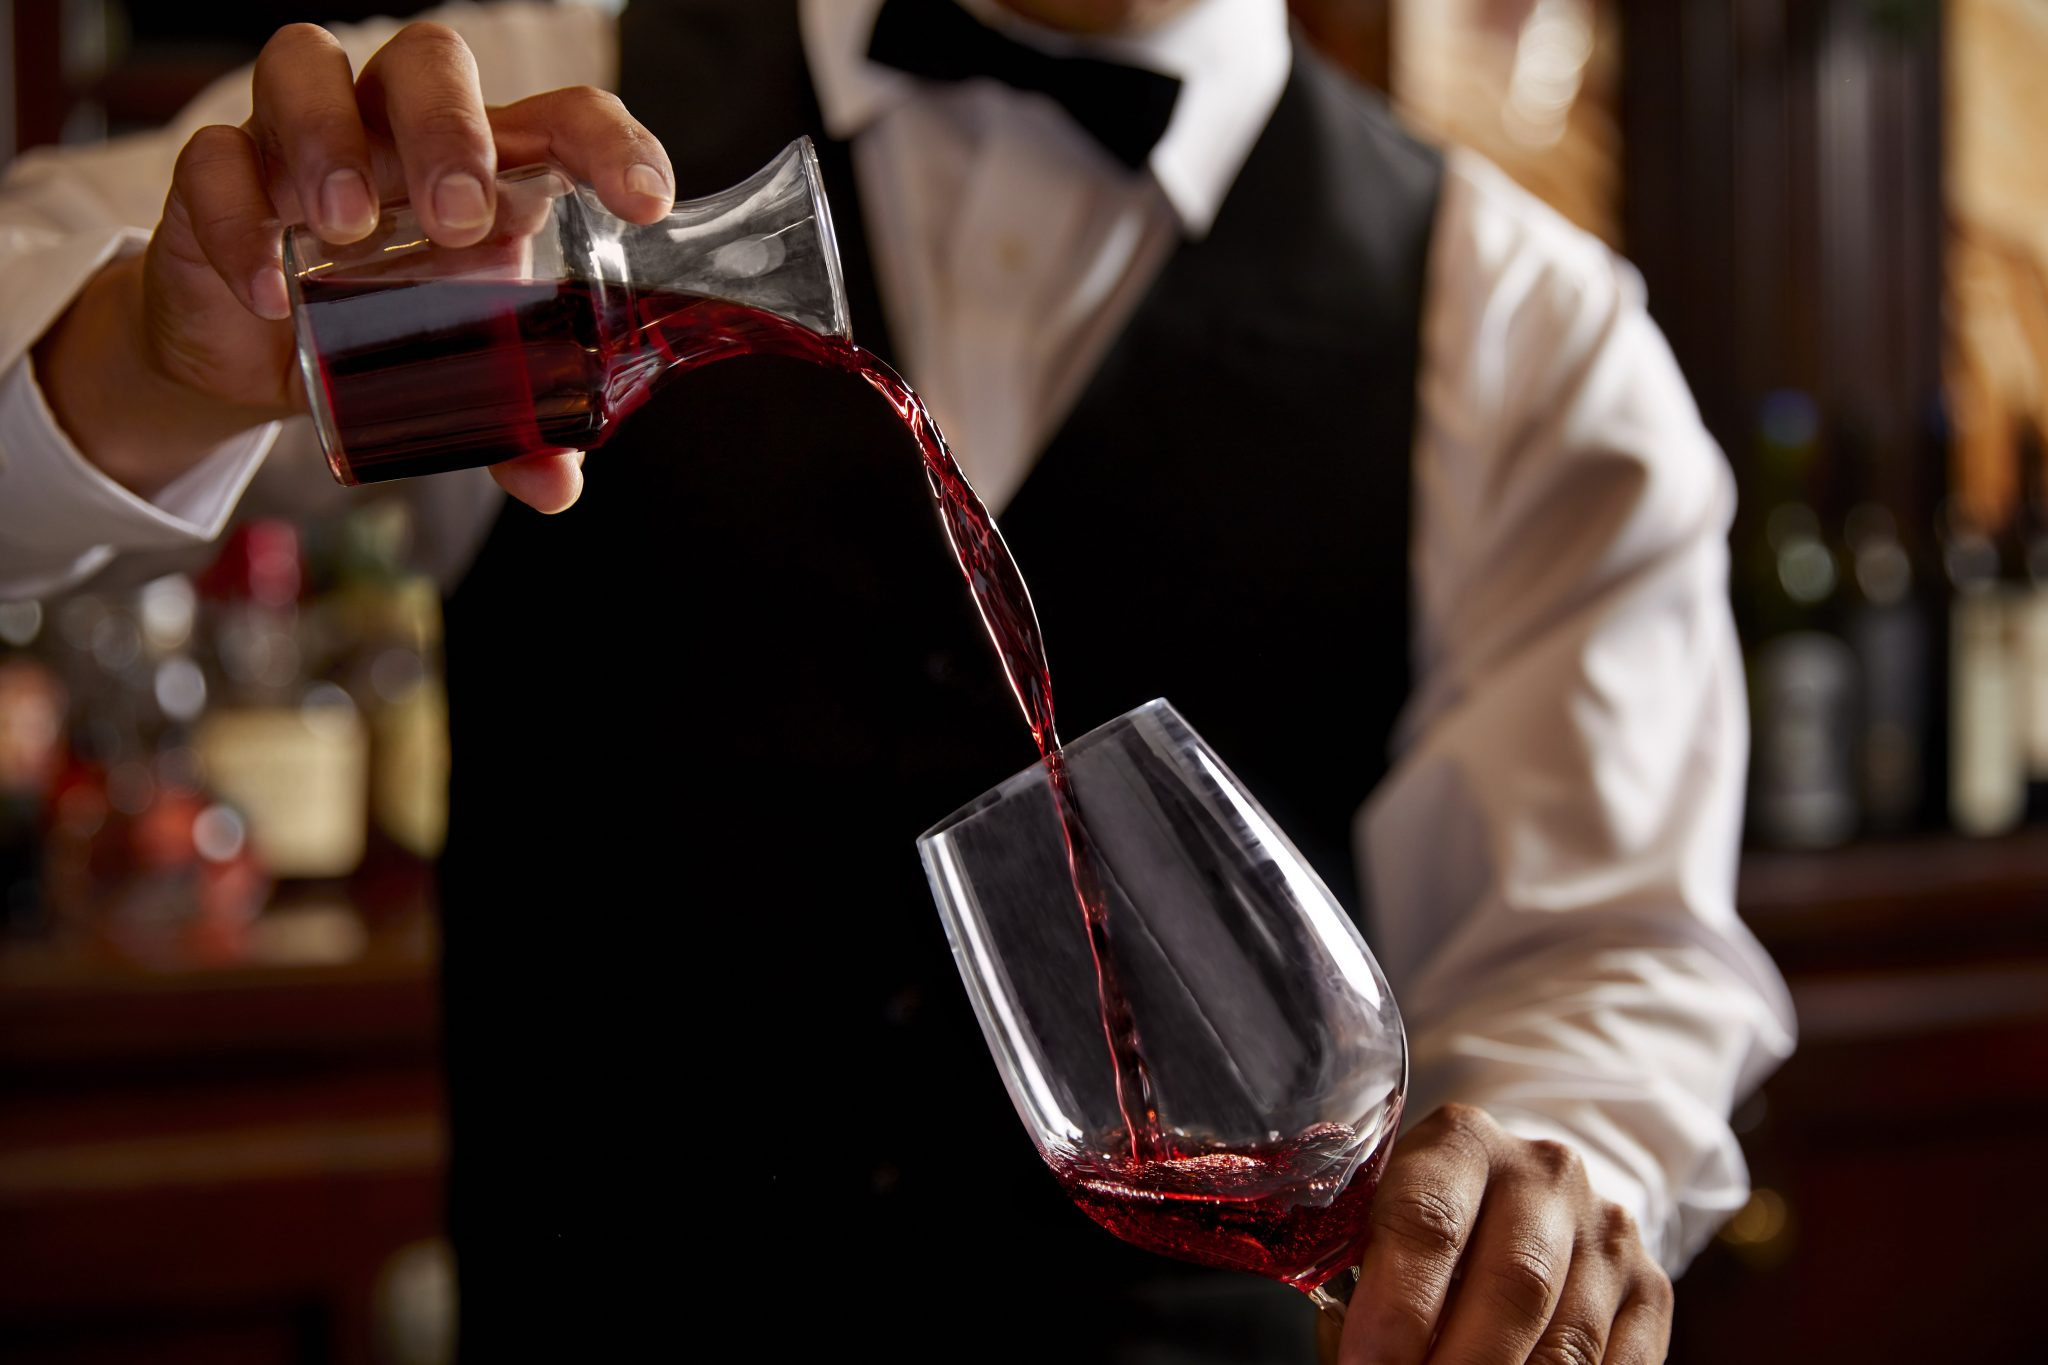 A bartender wearing a vest and bowtie pouring red wine from a carafe into a glass